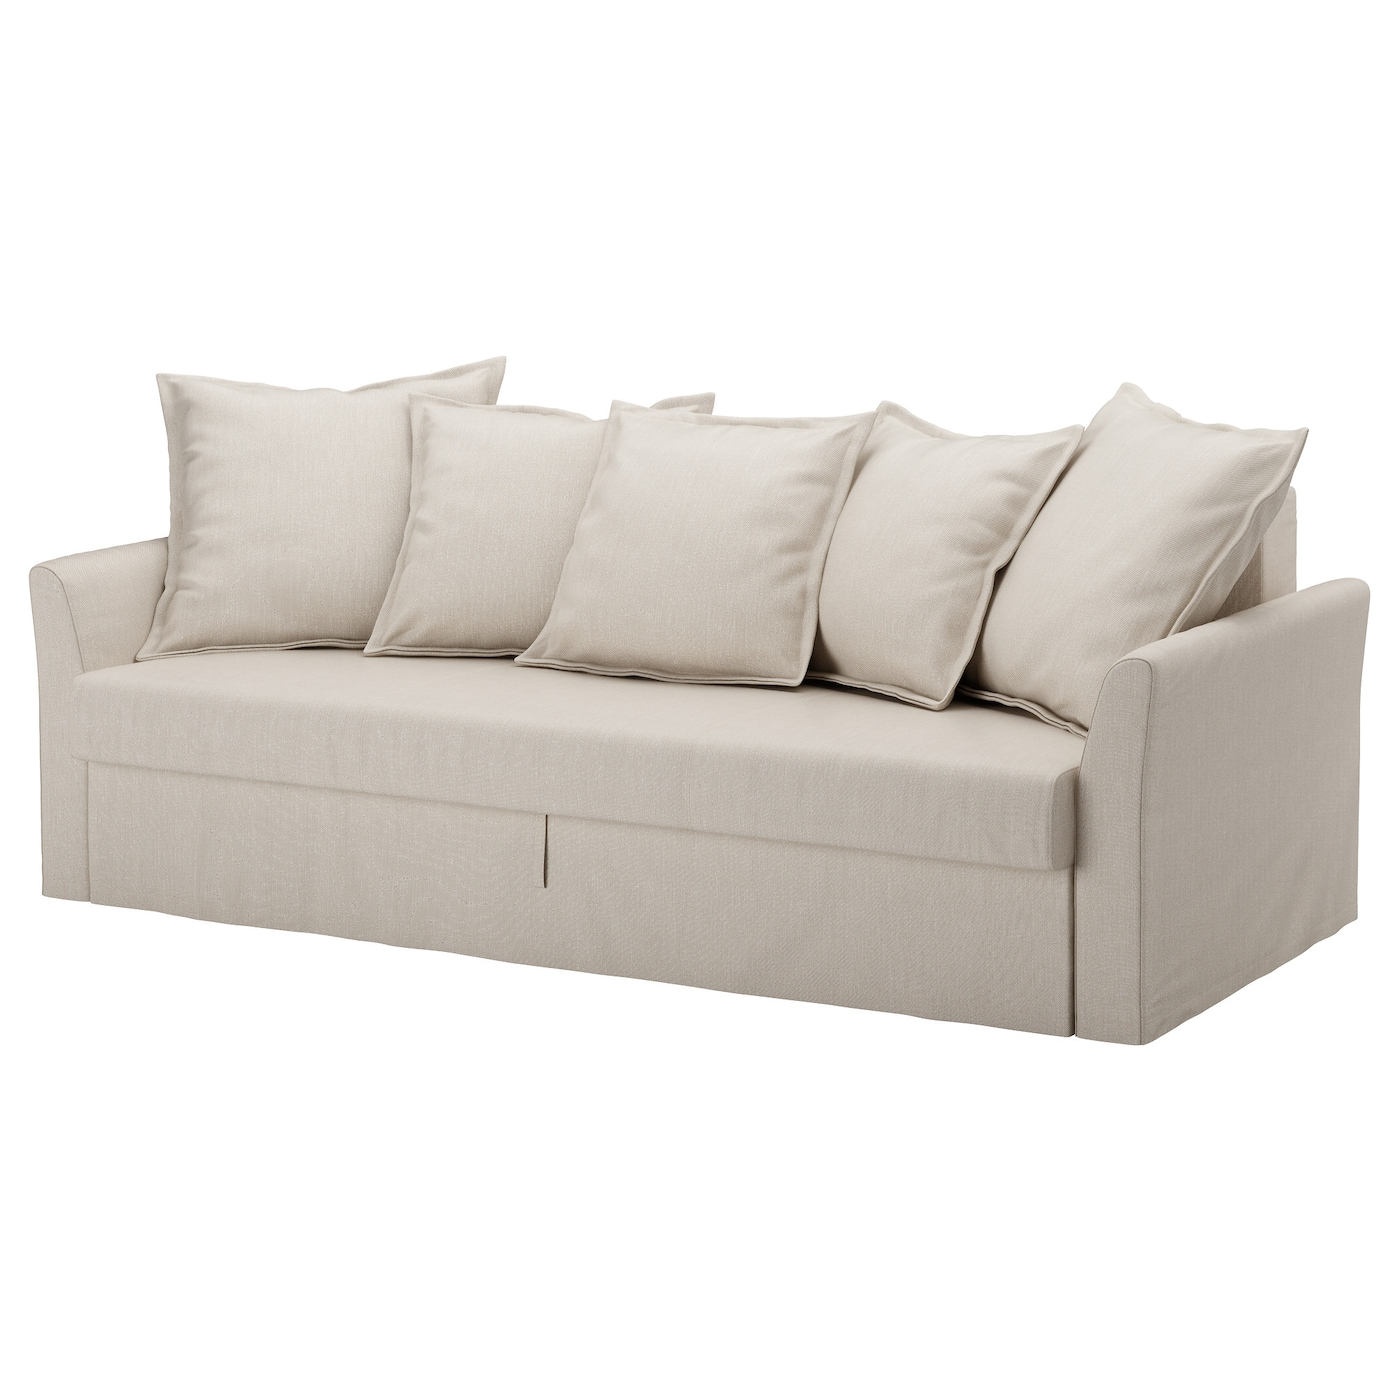 IKEA HOLMSUND three-seat sofa-bed Cover made of extra hard-wearing polyester with a dense texture.